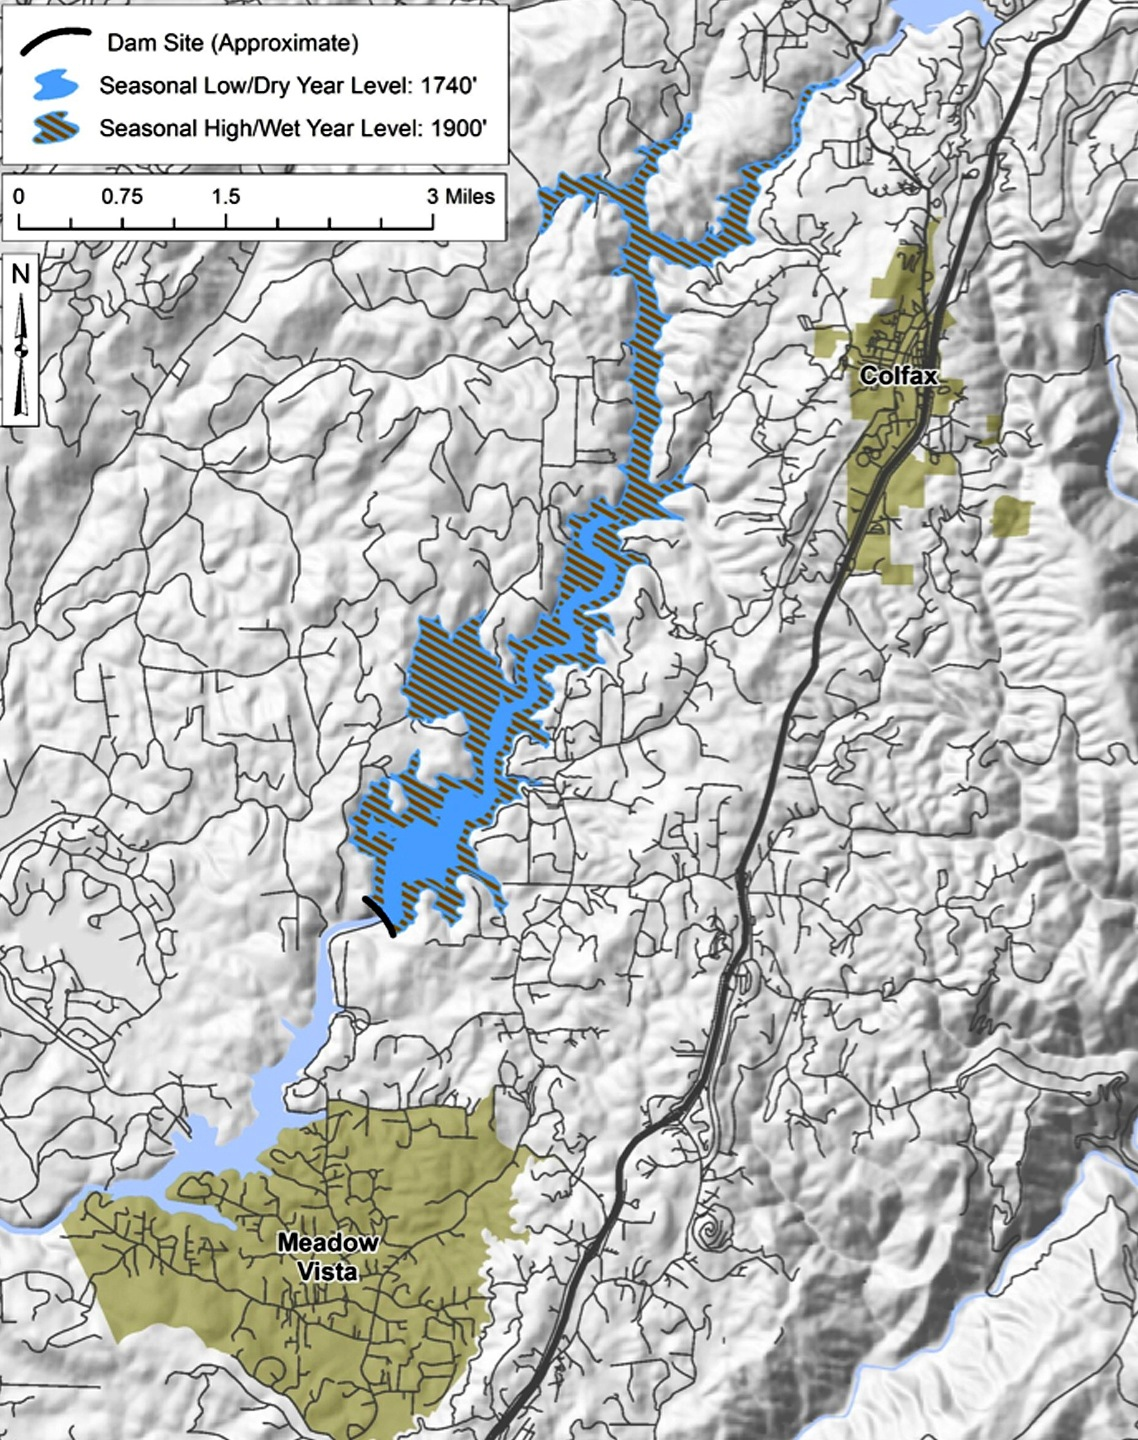 A map of the proposed Centennial Reservoir site near Meadow Vista, Calif.